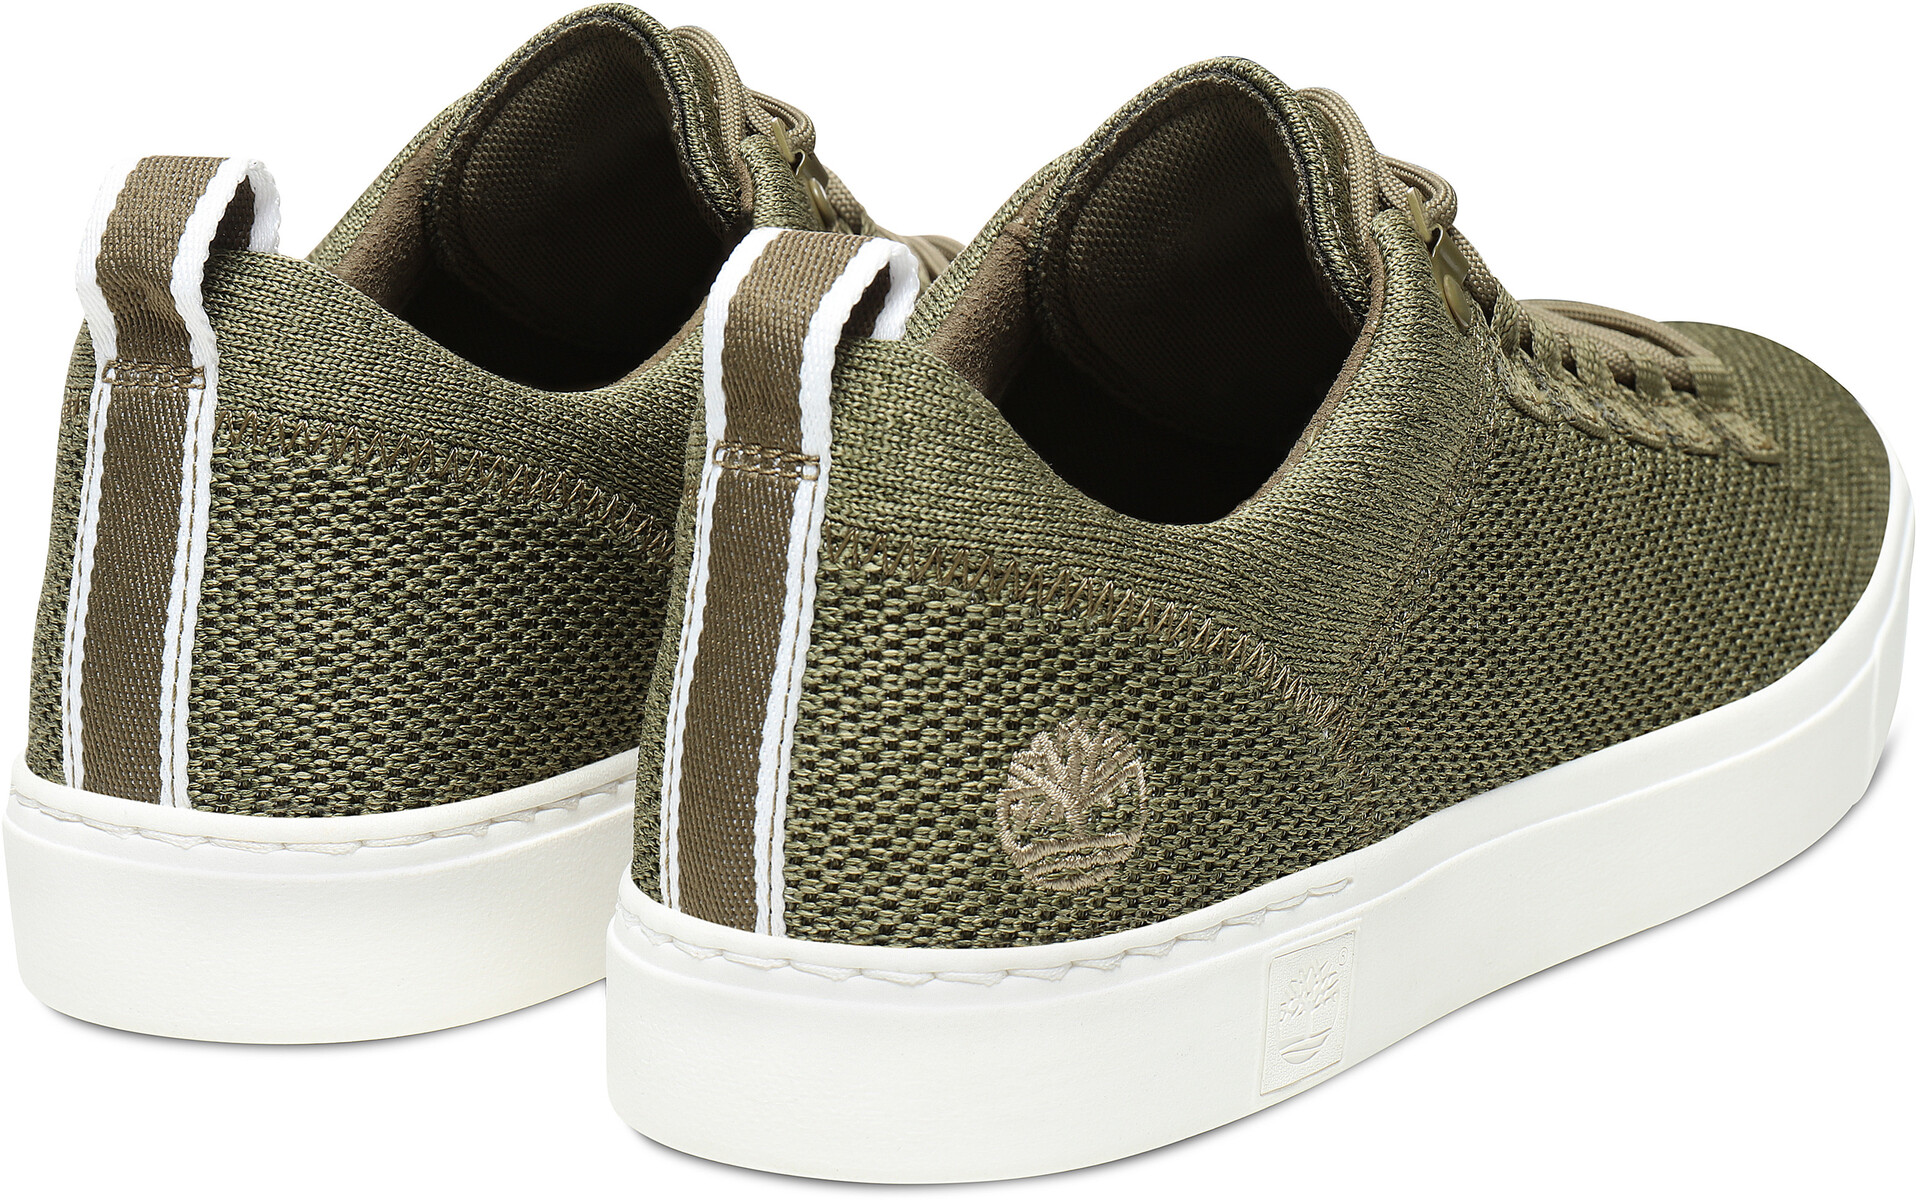 Timberland Amherst FlexiKnit Alpine Oxford Shoes Herren martini olive